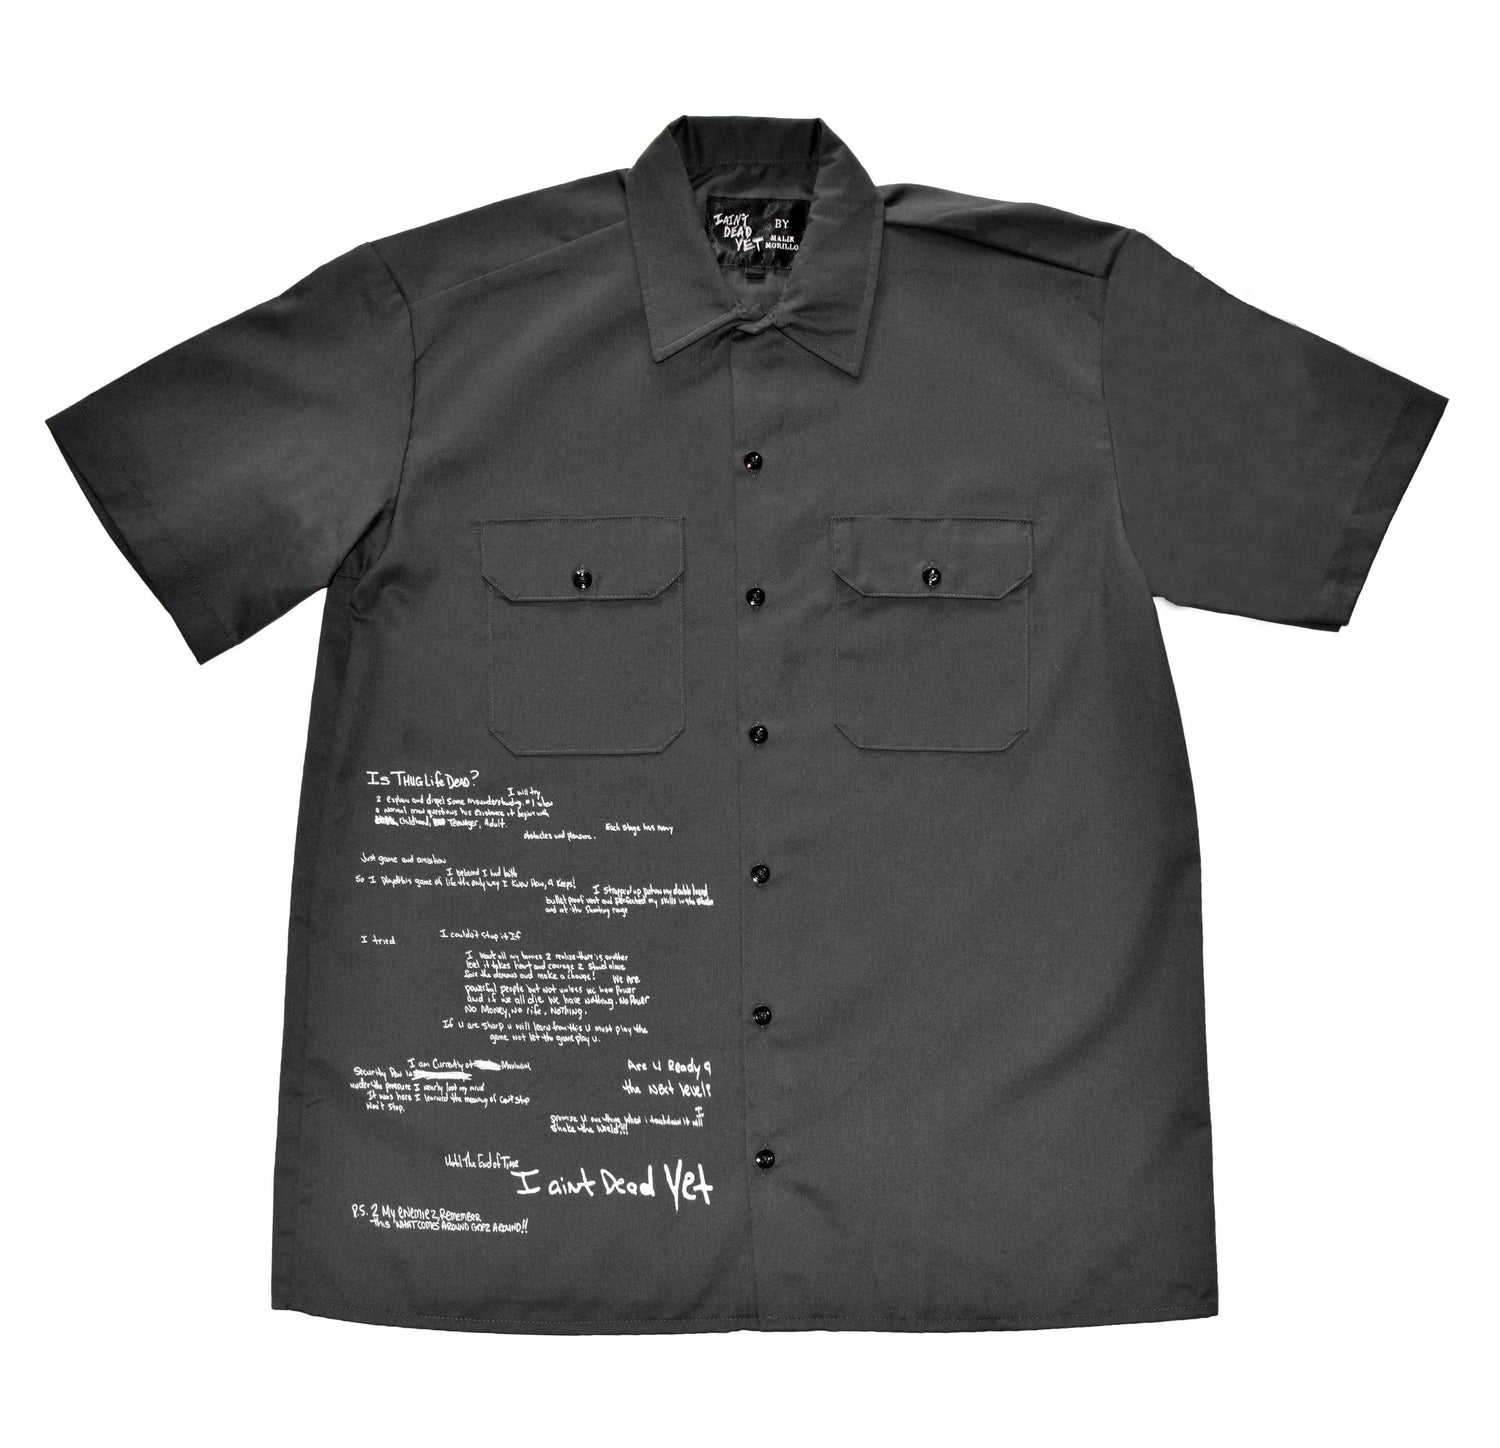 CCounty Jail Work Shirt